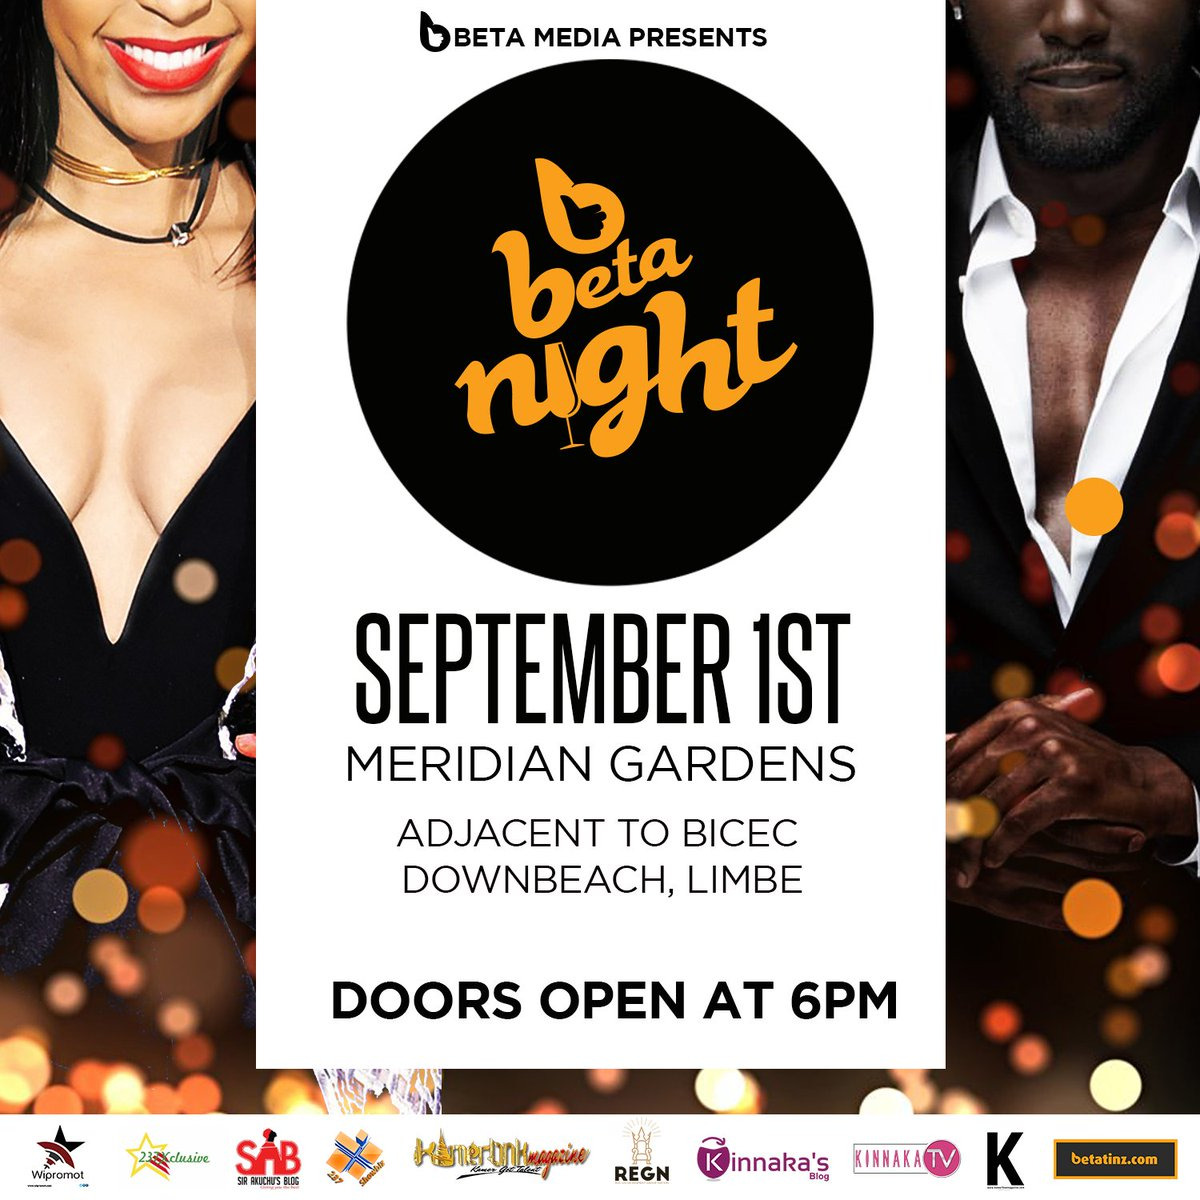 Let&#39;s have an awesome night in Limbe  #BetaNight || Meridian Gardens - Down Beach  #VIP #Party #Lifestyle #Network <br>http://pic.twitter.com/jh5hmAE7dj